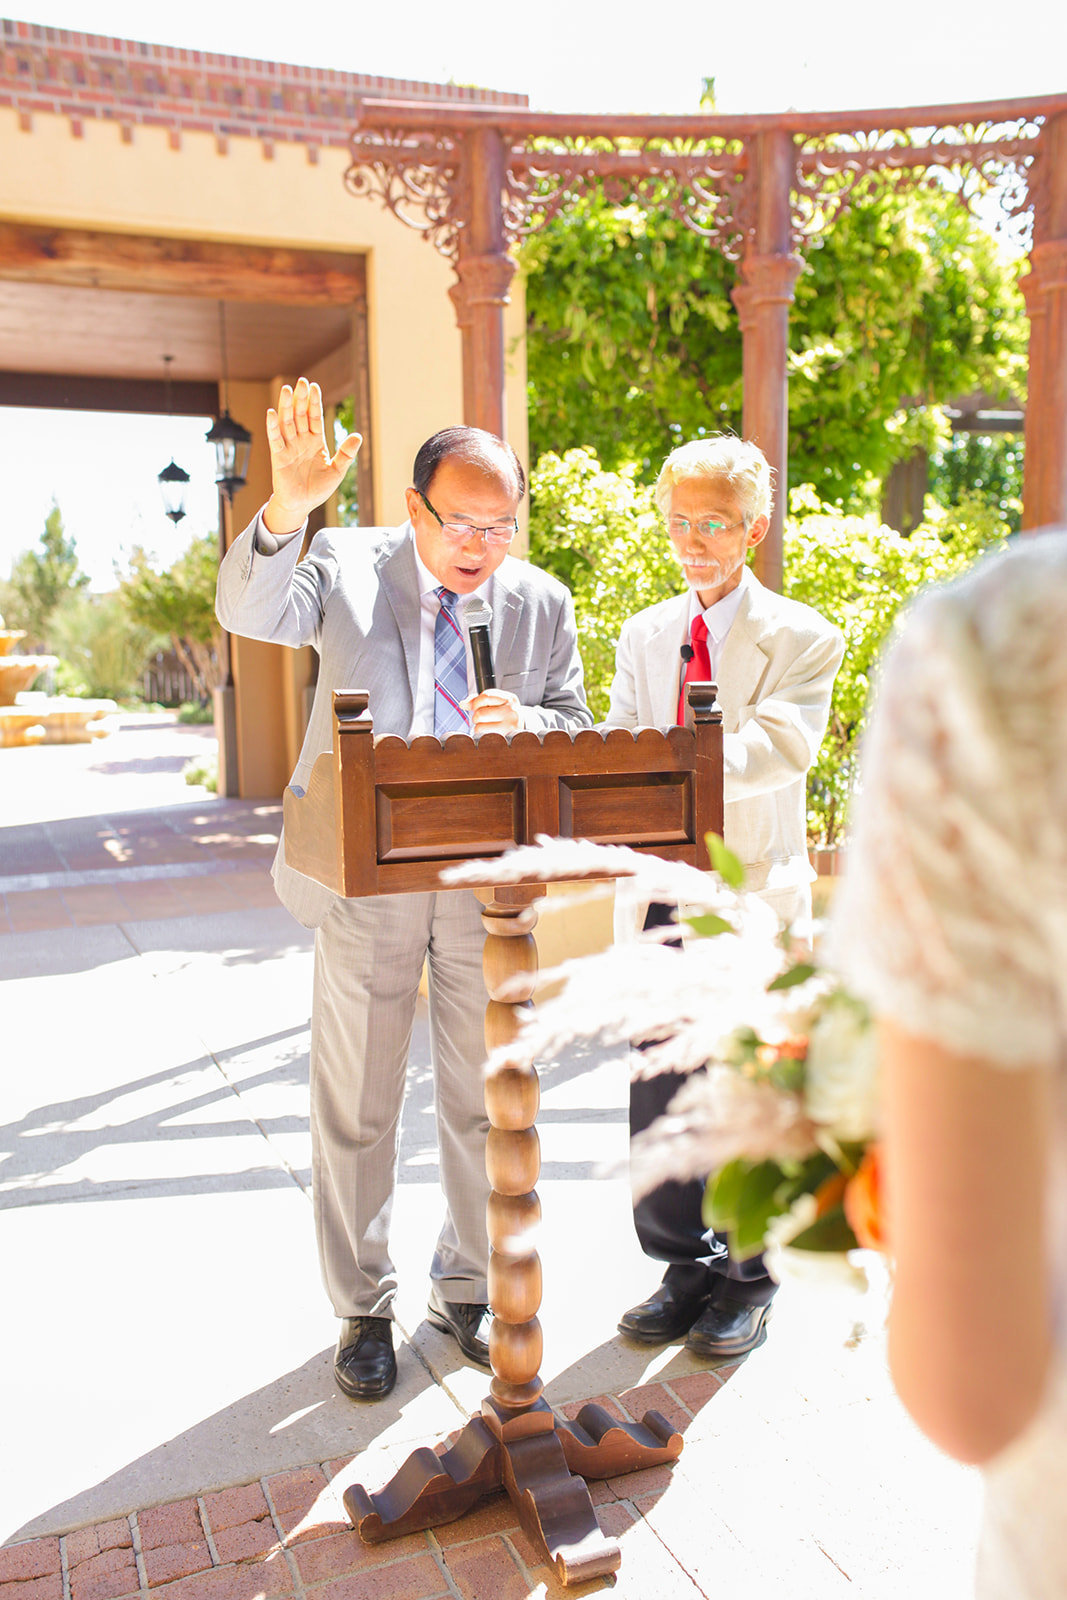 Albuquerque Wedding Photographer_Hotel Albuquerque_www.tylerbrooke.com_Kate Kauffman_108